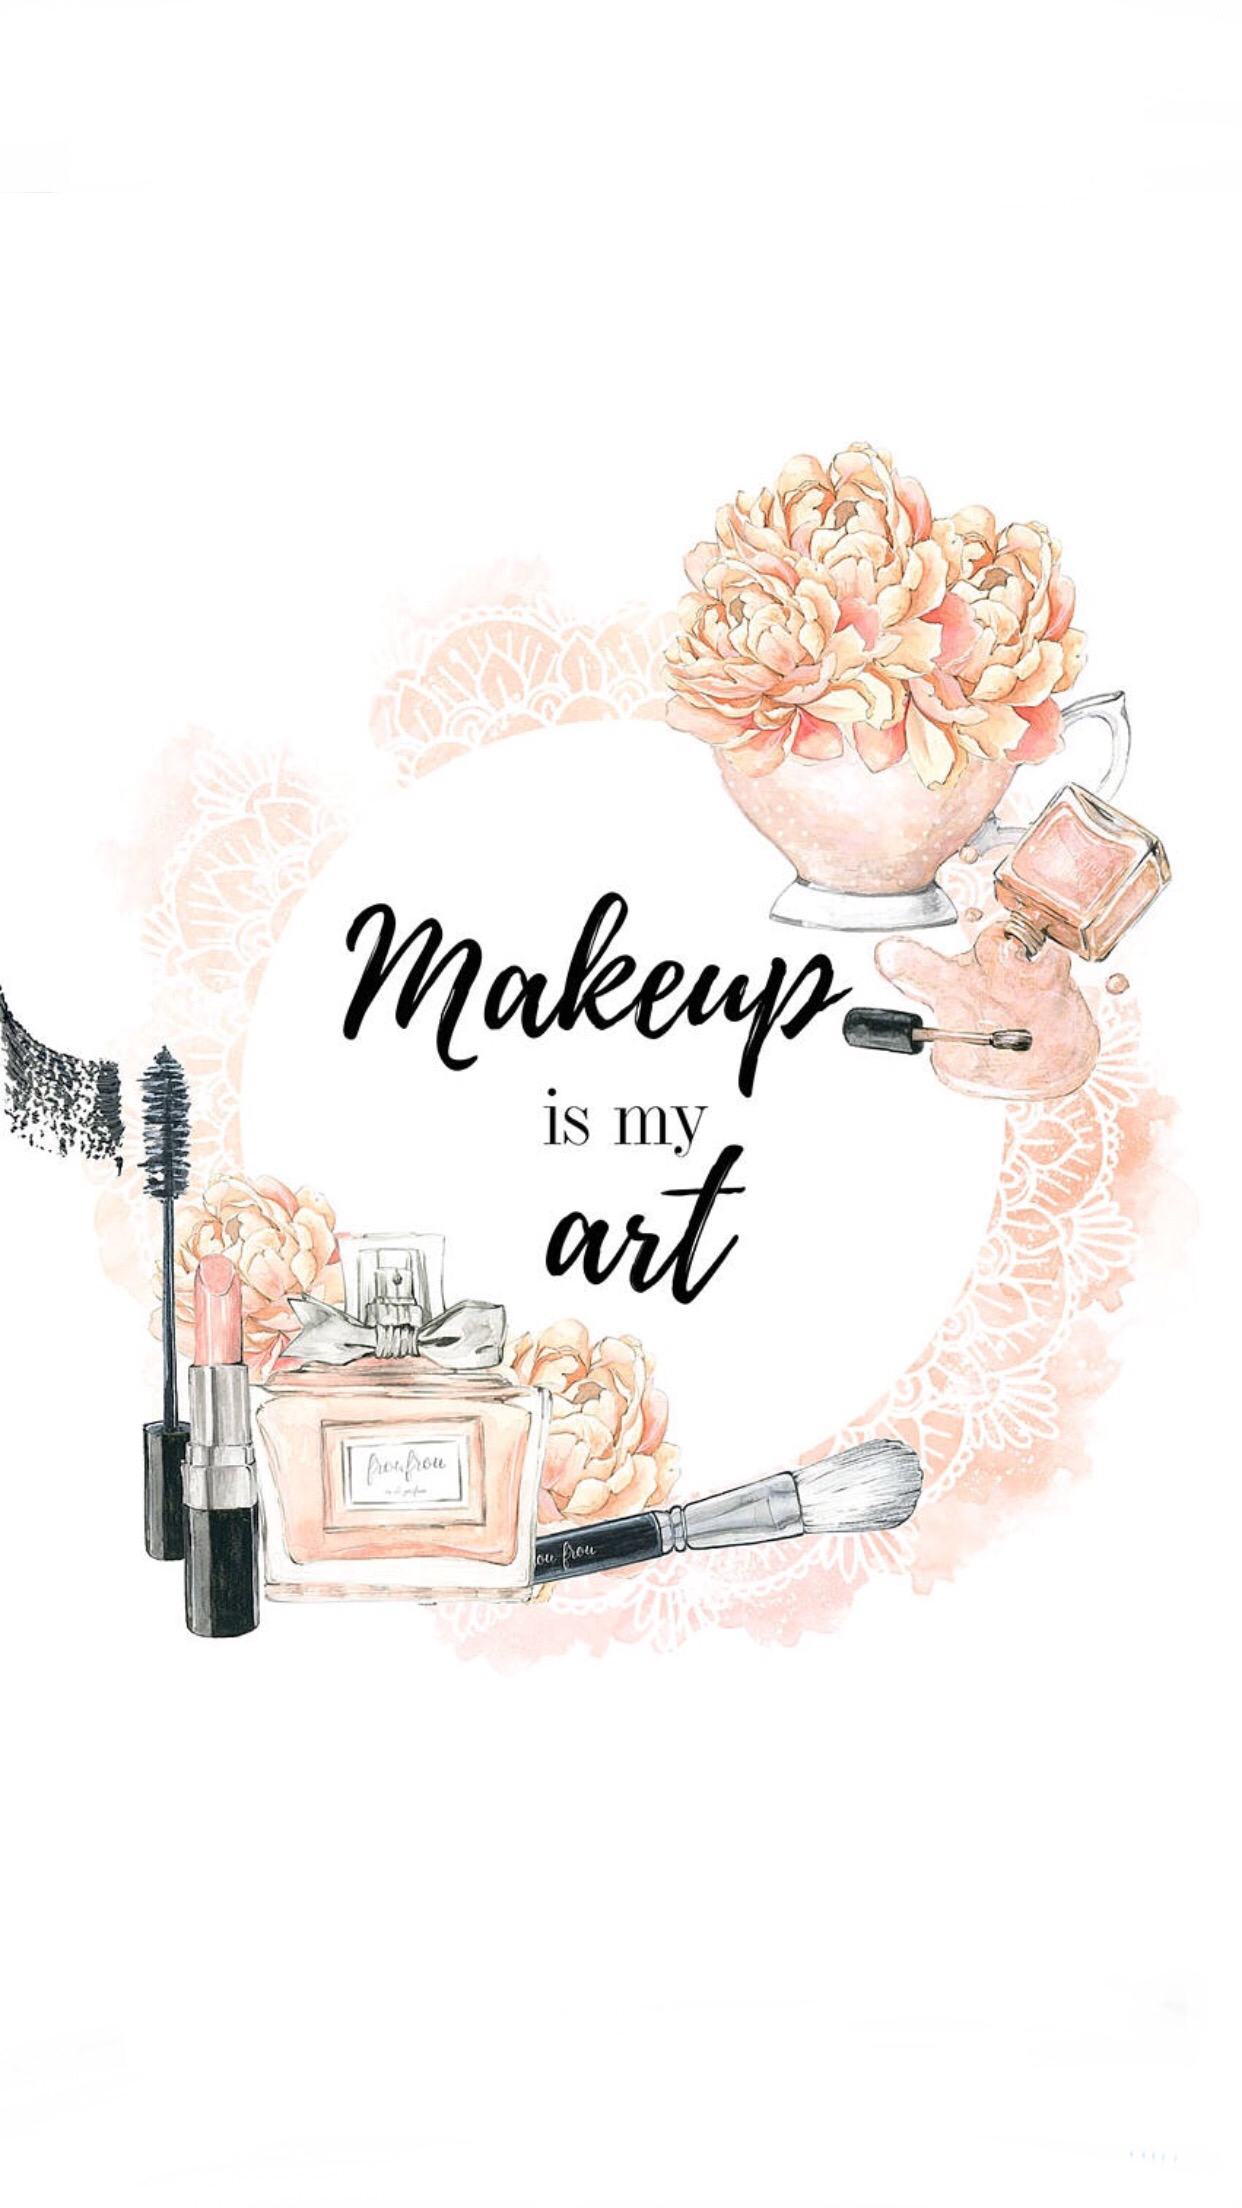 Pin By Noufh On Wallpapers Ilustration Art Makeup Illustration Makeup Artist Logo